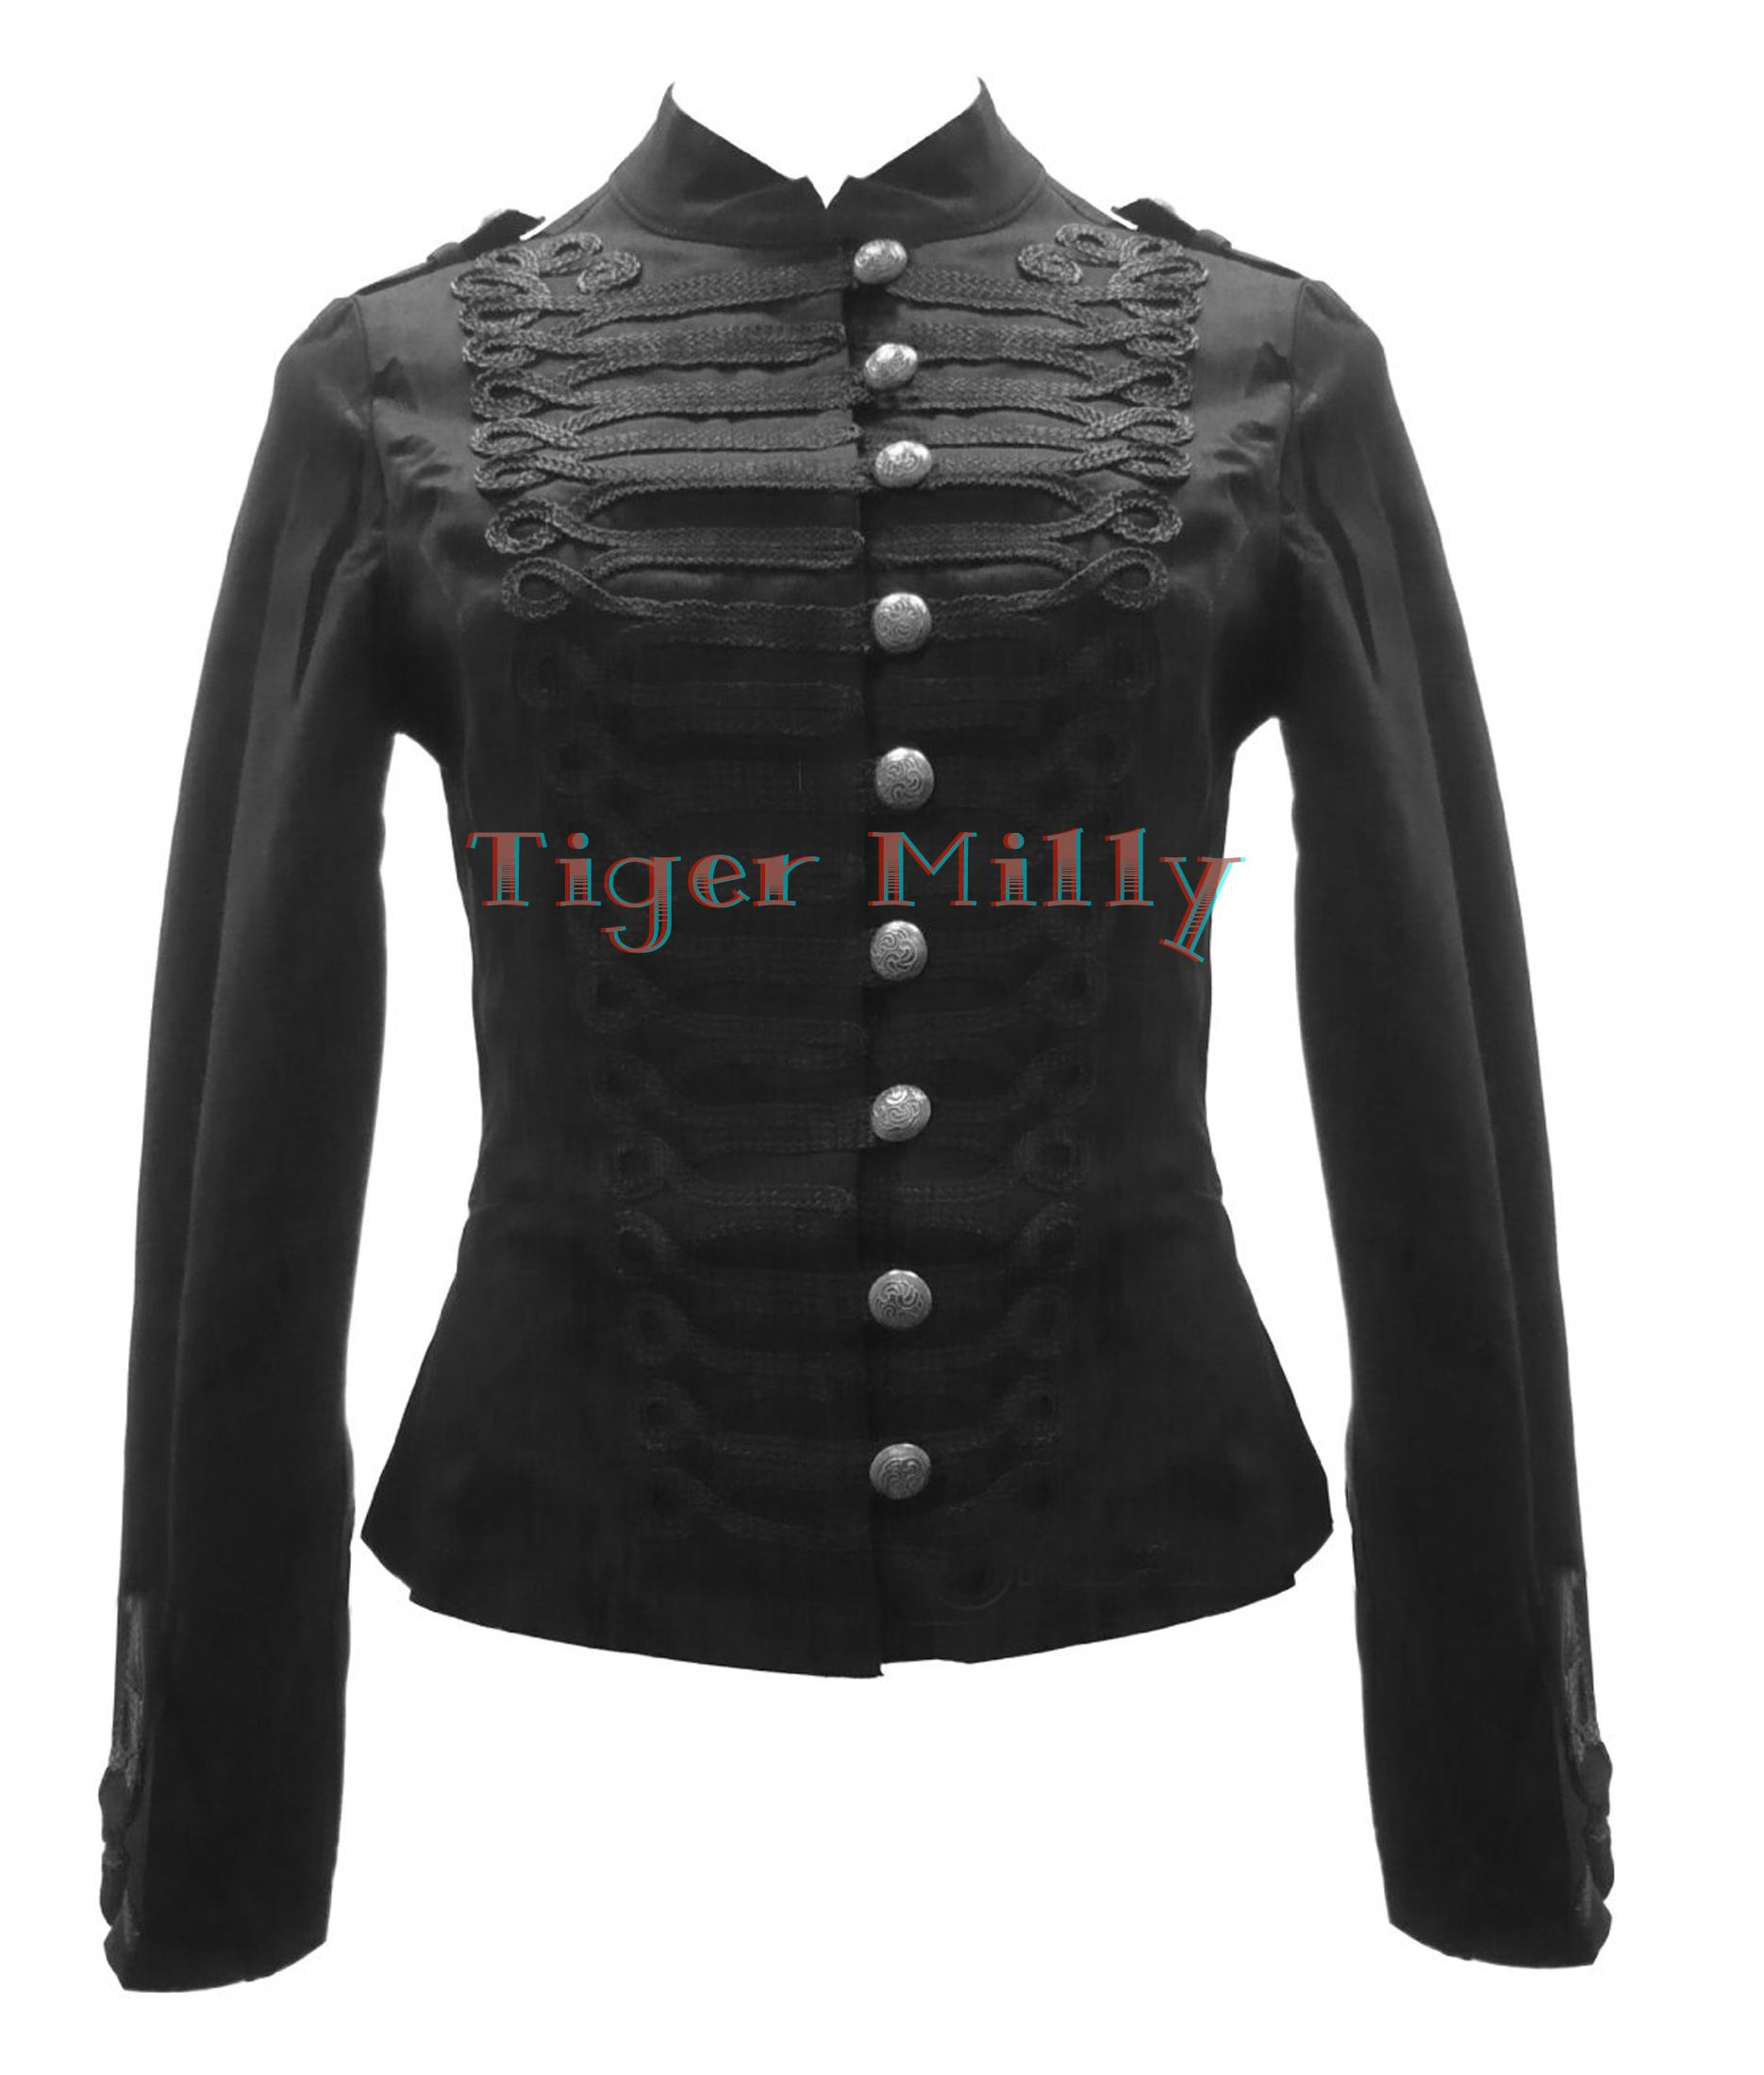 H&R London Women Short Military Jacket Coat Black Size US 6-14 ...